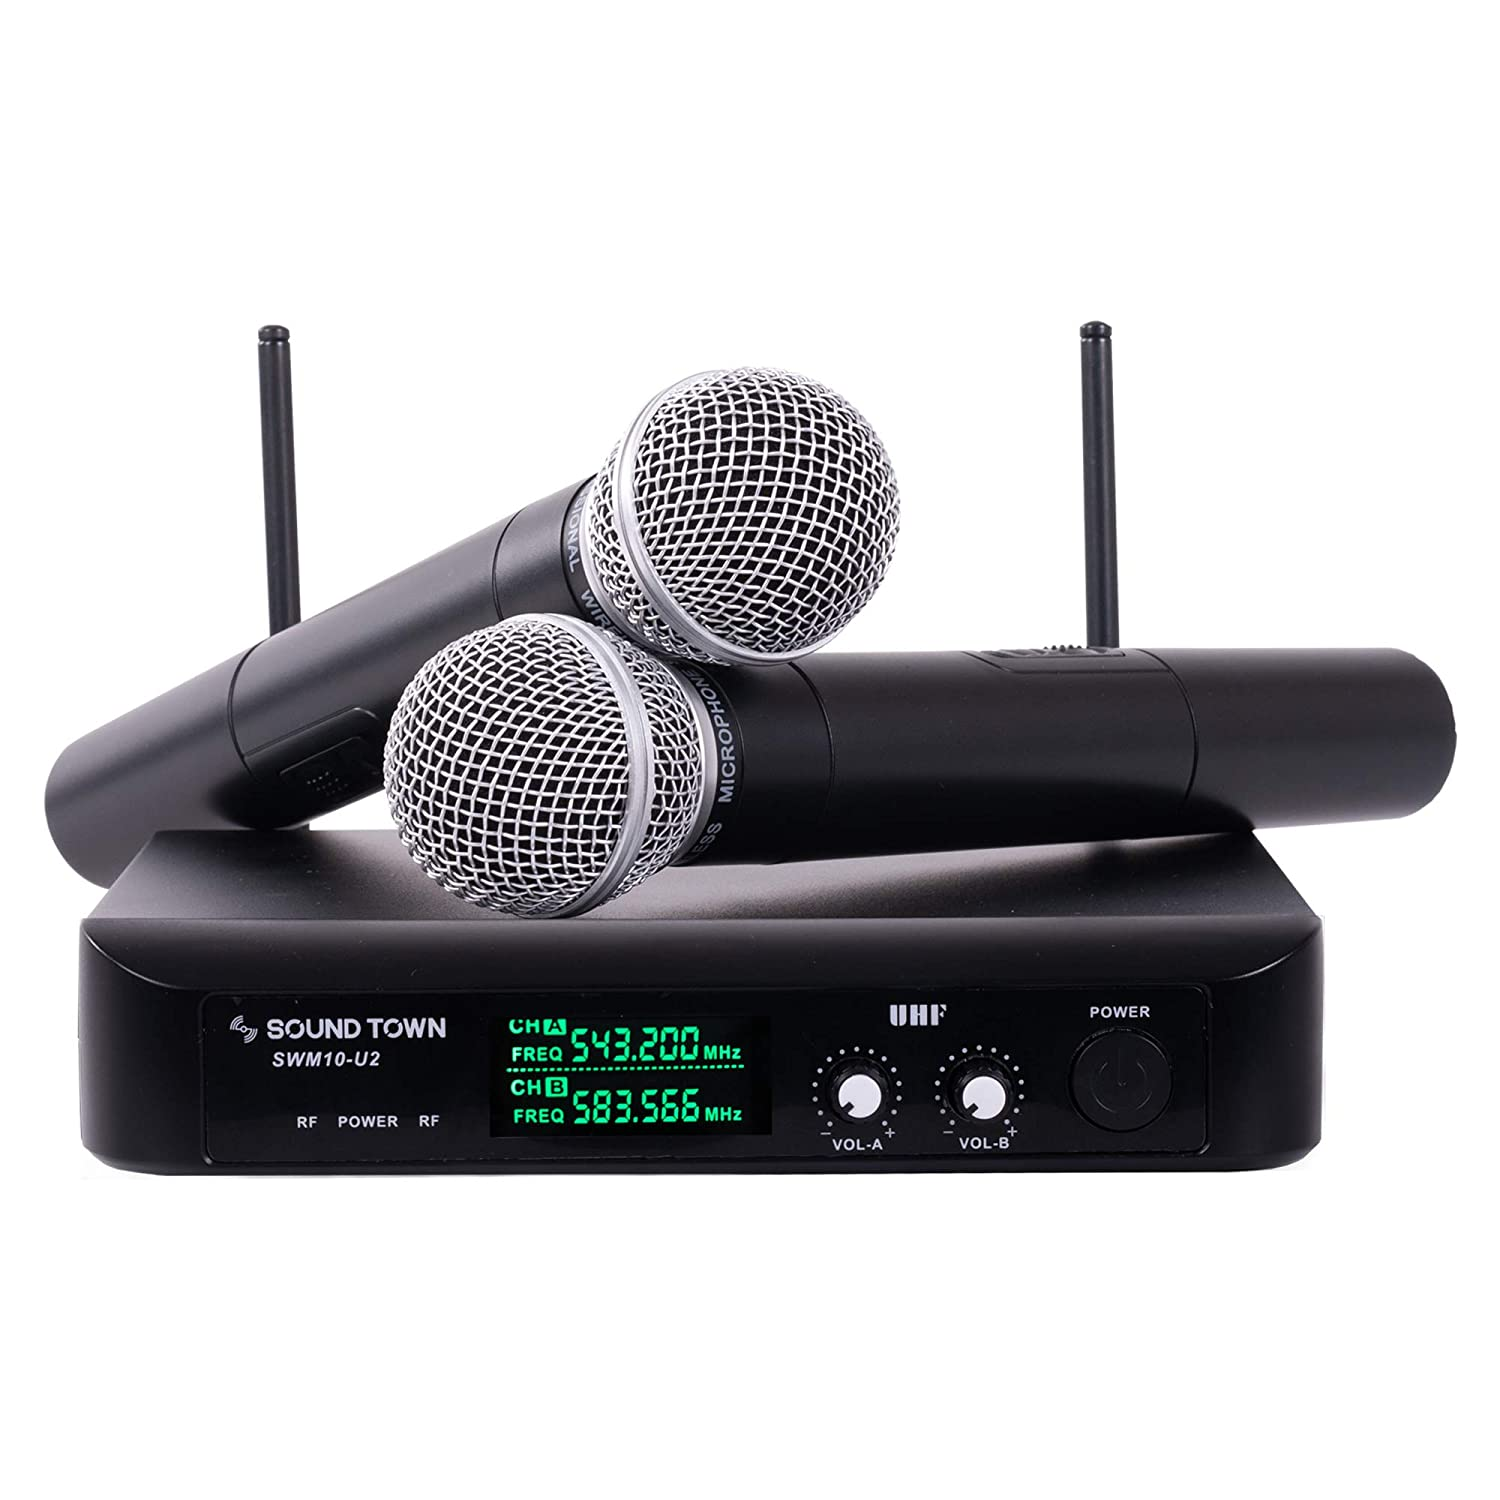 Sound Town SWM10-U2HH Professional Dual-Channel UHF Wireless Microphone  System with 2 Handheld Mics, for Church, Business Meeting, Outdoor Wedding  and